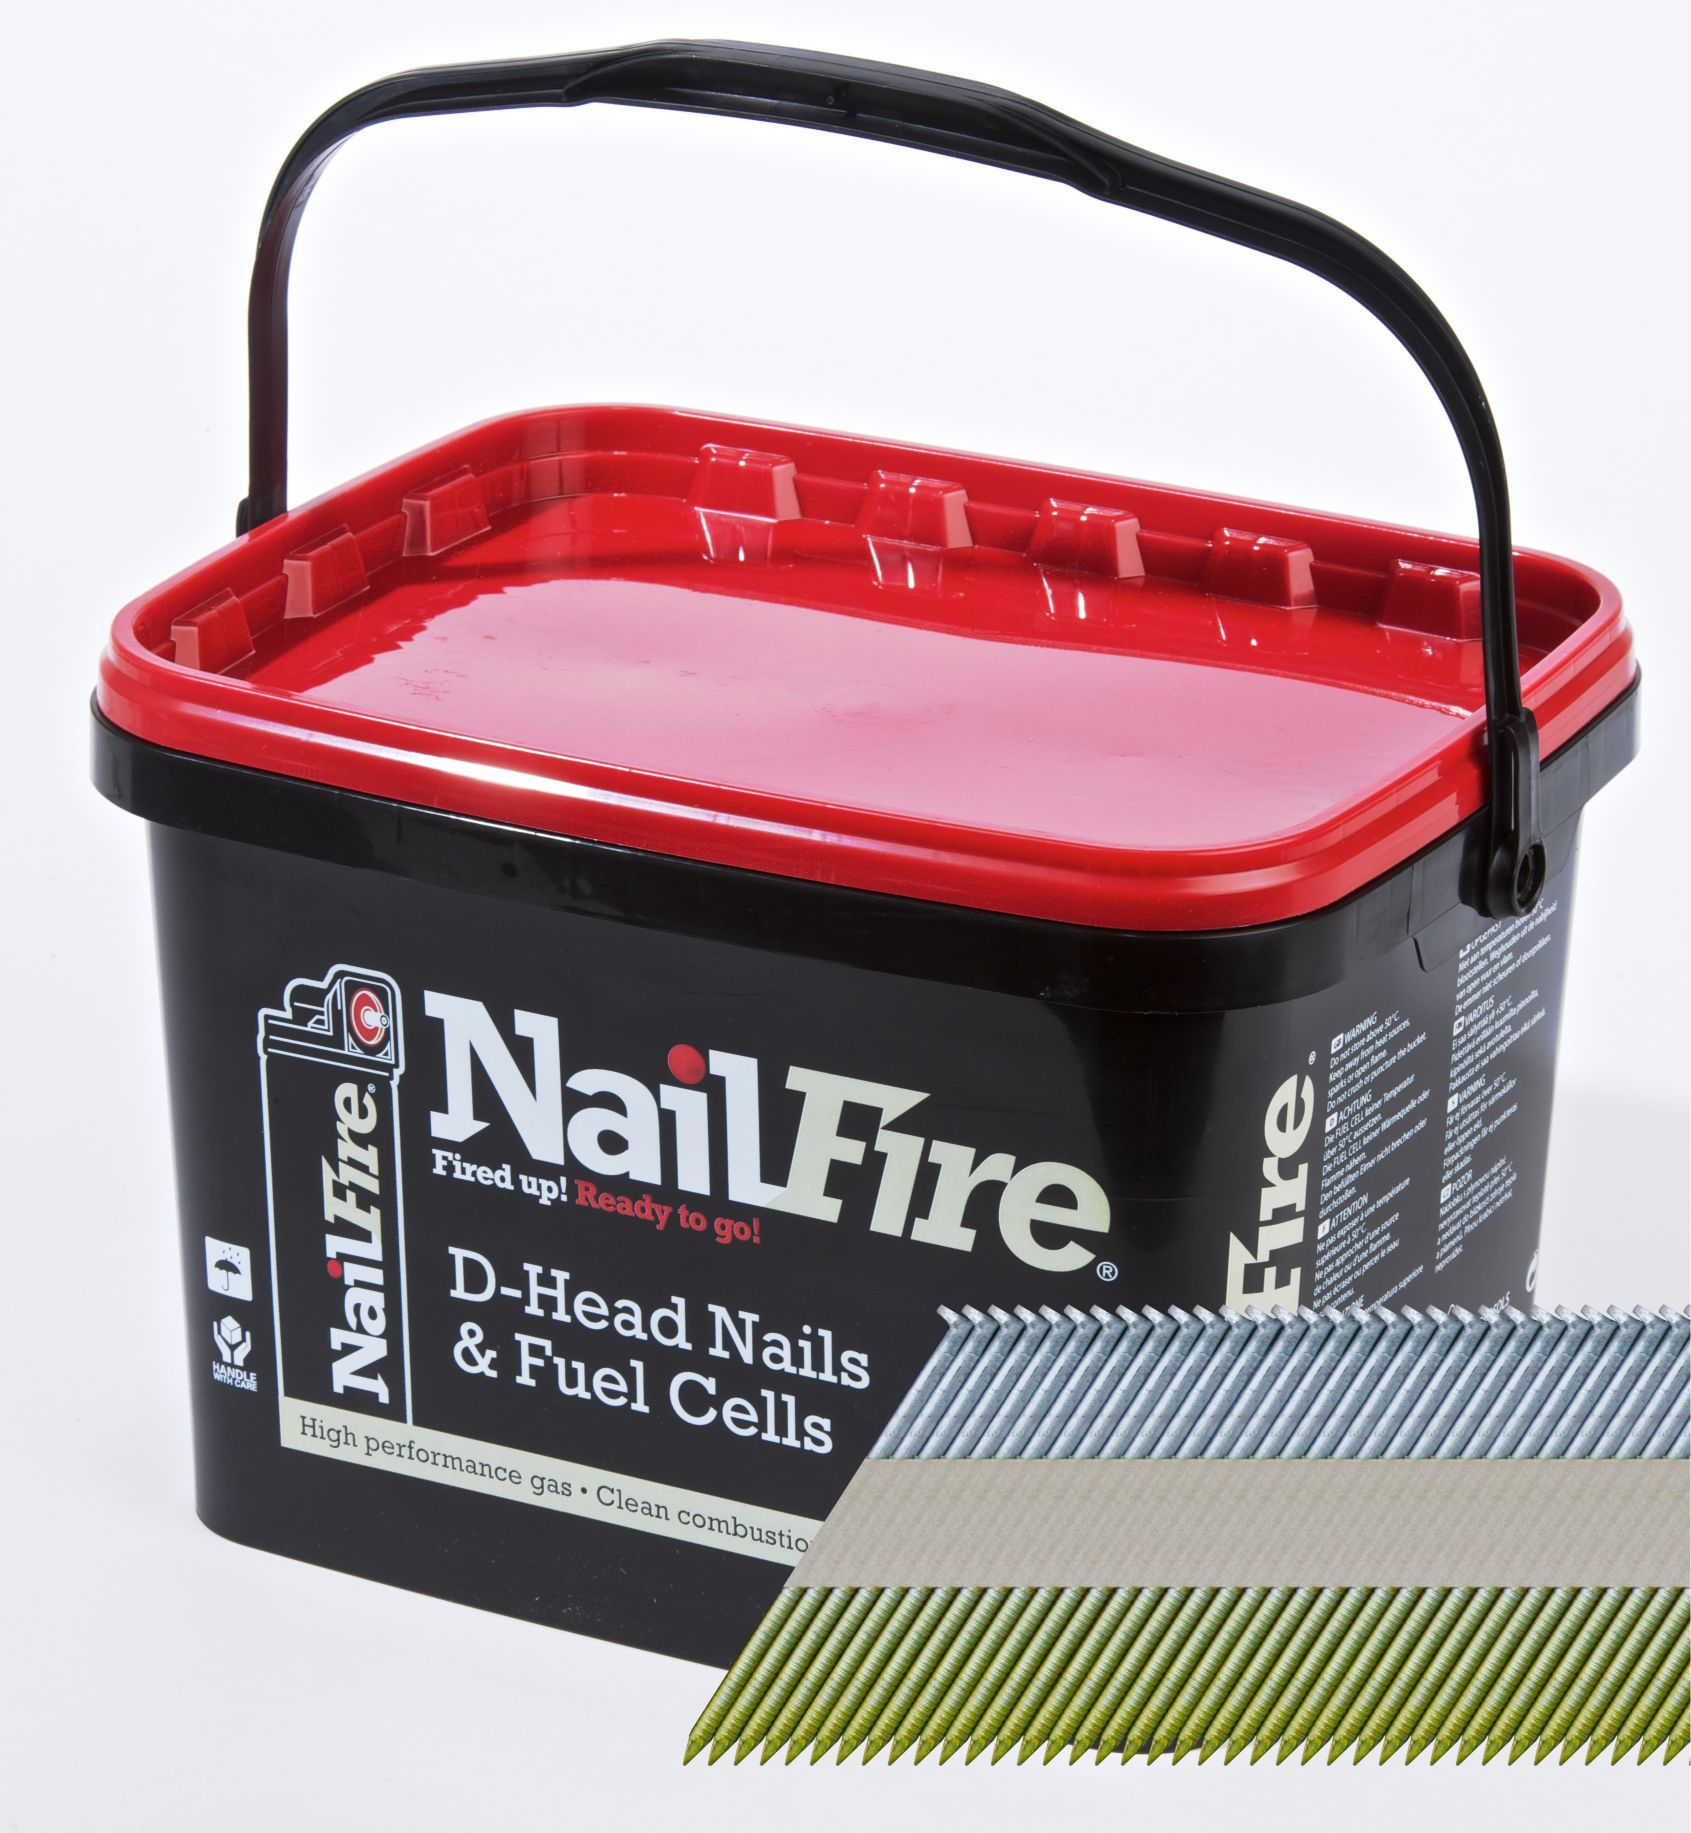 NAILFIRE 1ST FIX E/GALV RING NAILS & GAS 76MM (BOX OF 2000)